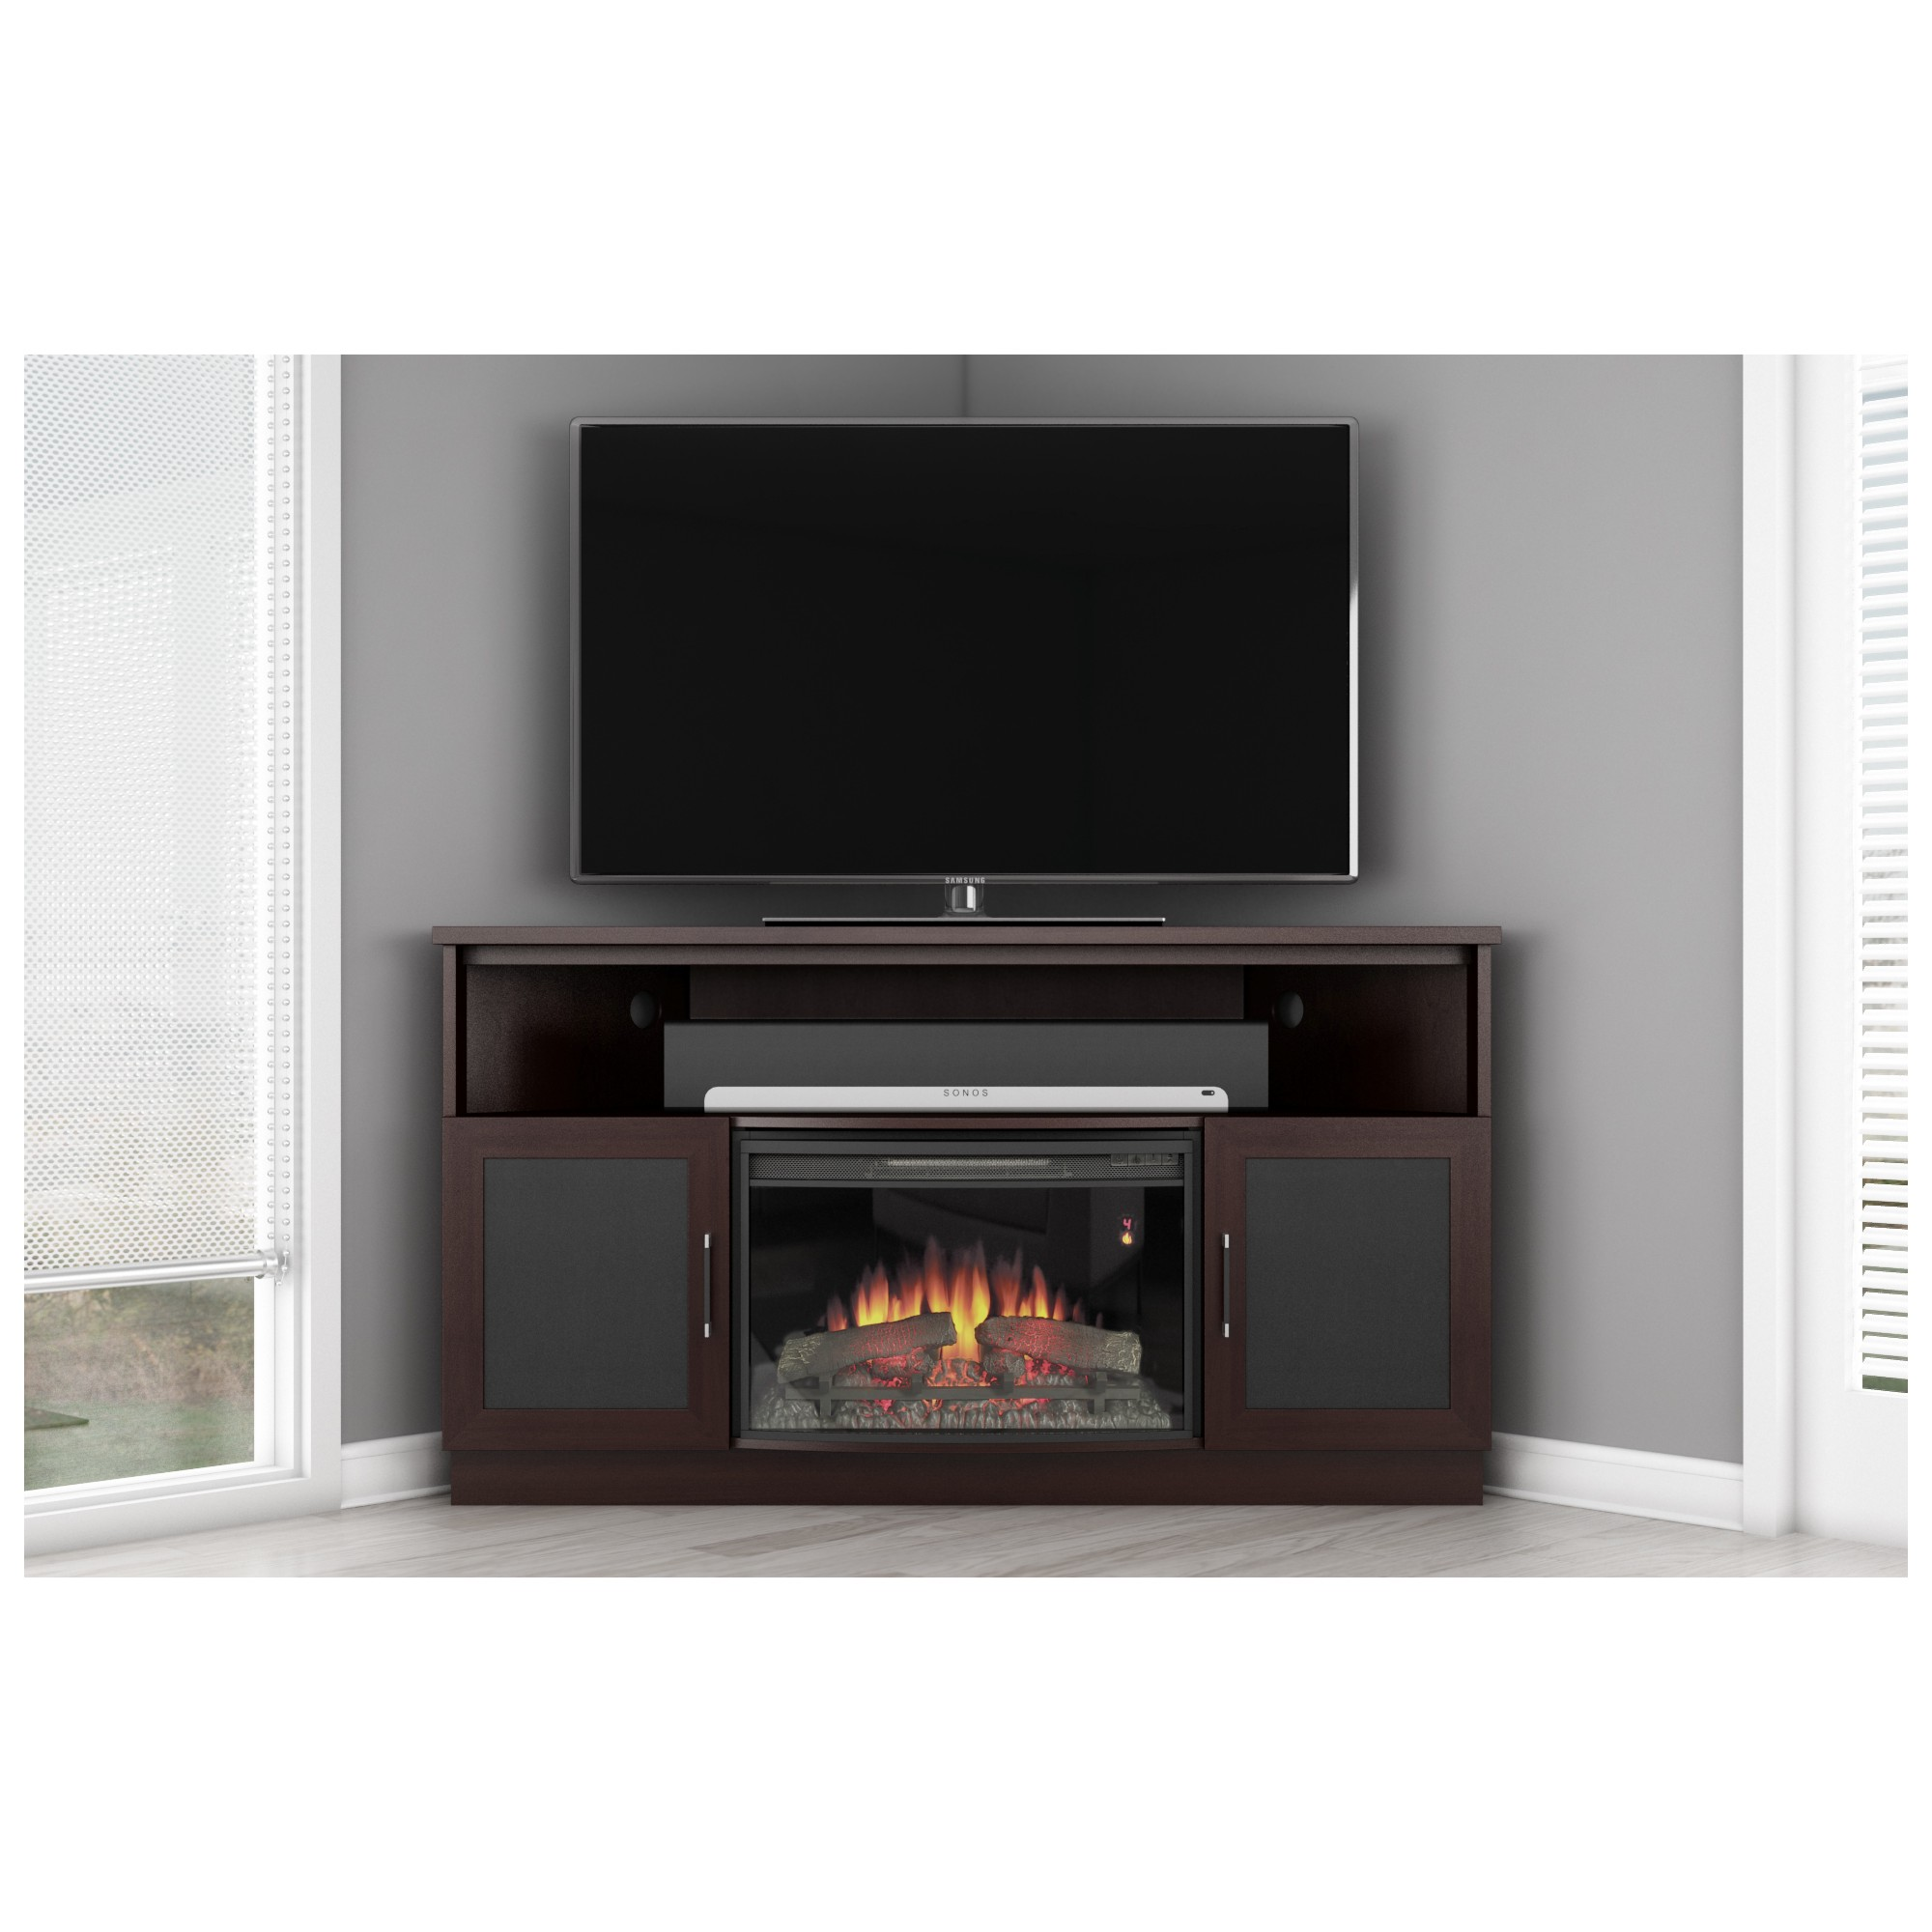 60 Tv Stand Contemporary Corner Cabinet W Electric Fireplace In Wenge By Furnitech